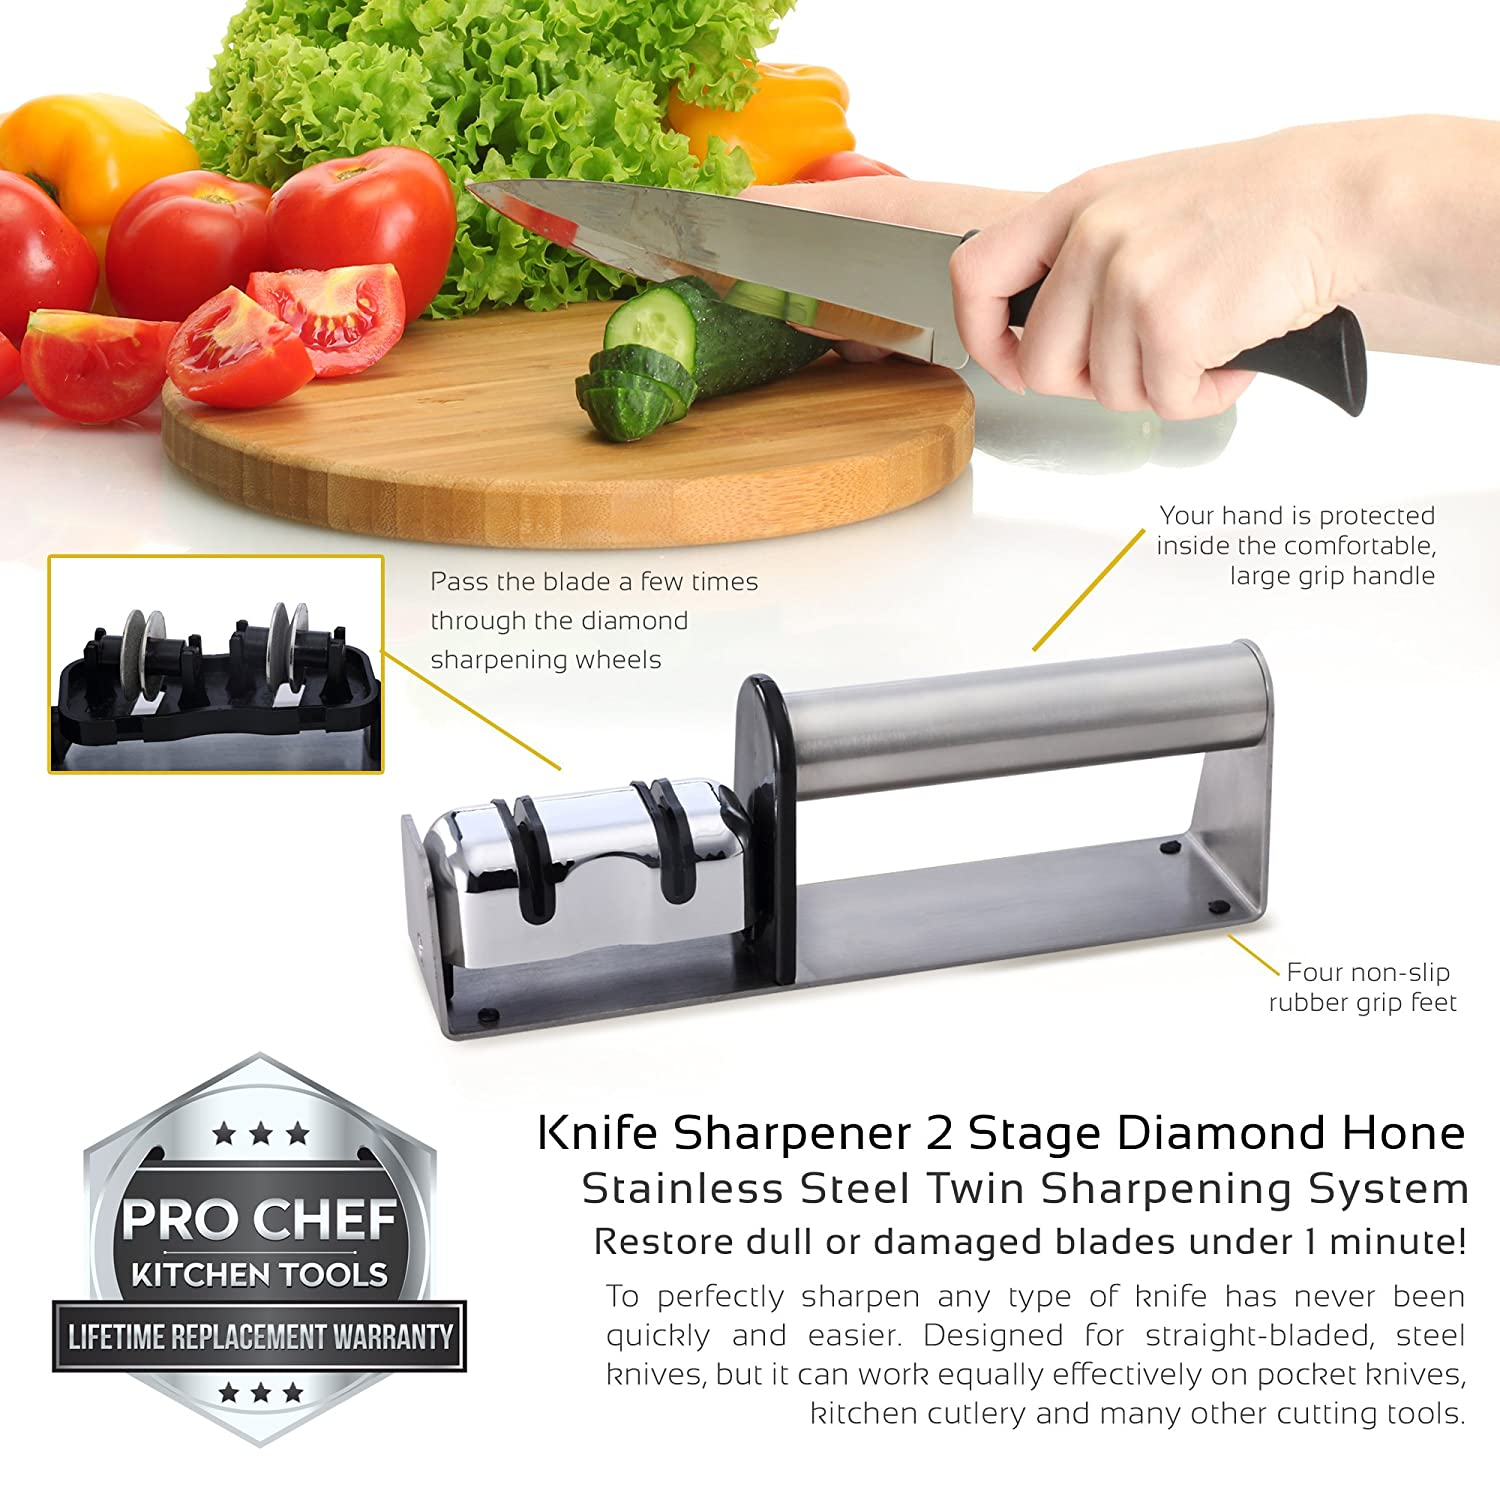 amazon com pro chef kitchen tools stainless steel knife sharpener amazon com pro chef kitchen tools stainless steel knife sharpener 2 stage diamond hone twin sharpening system commercial professional restaurant prime